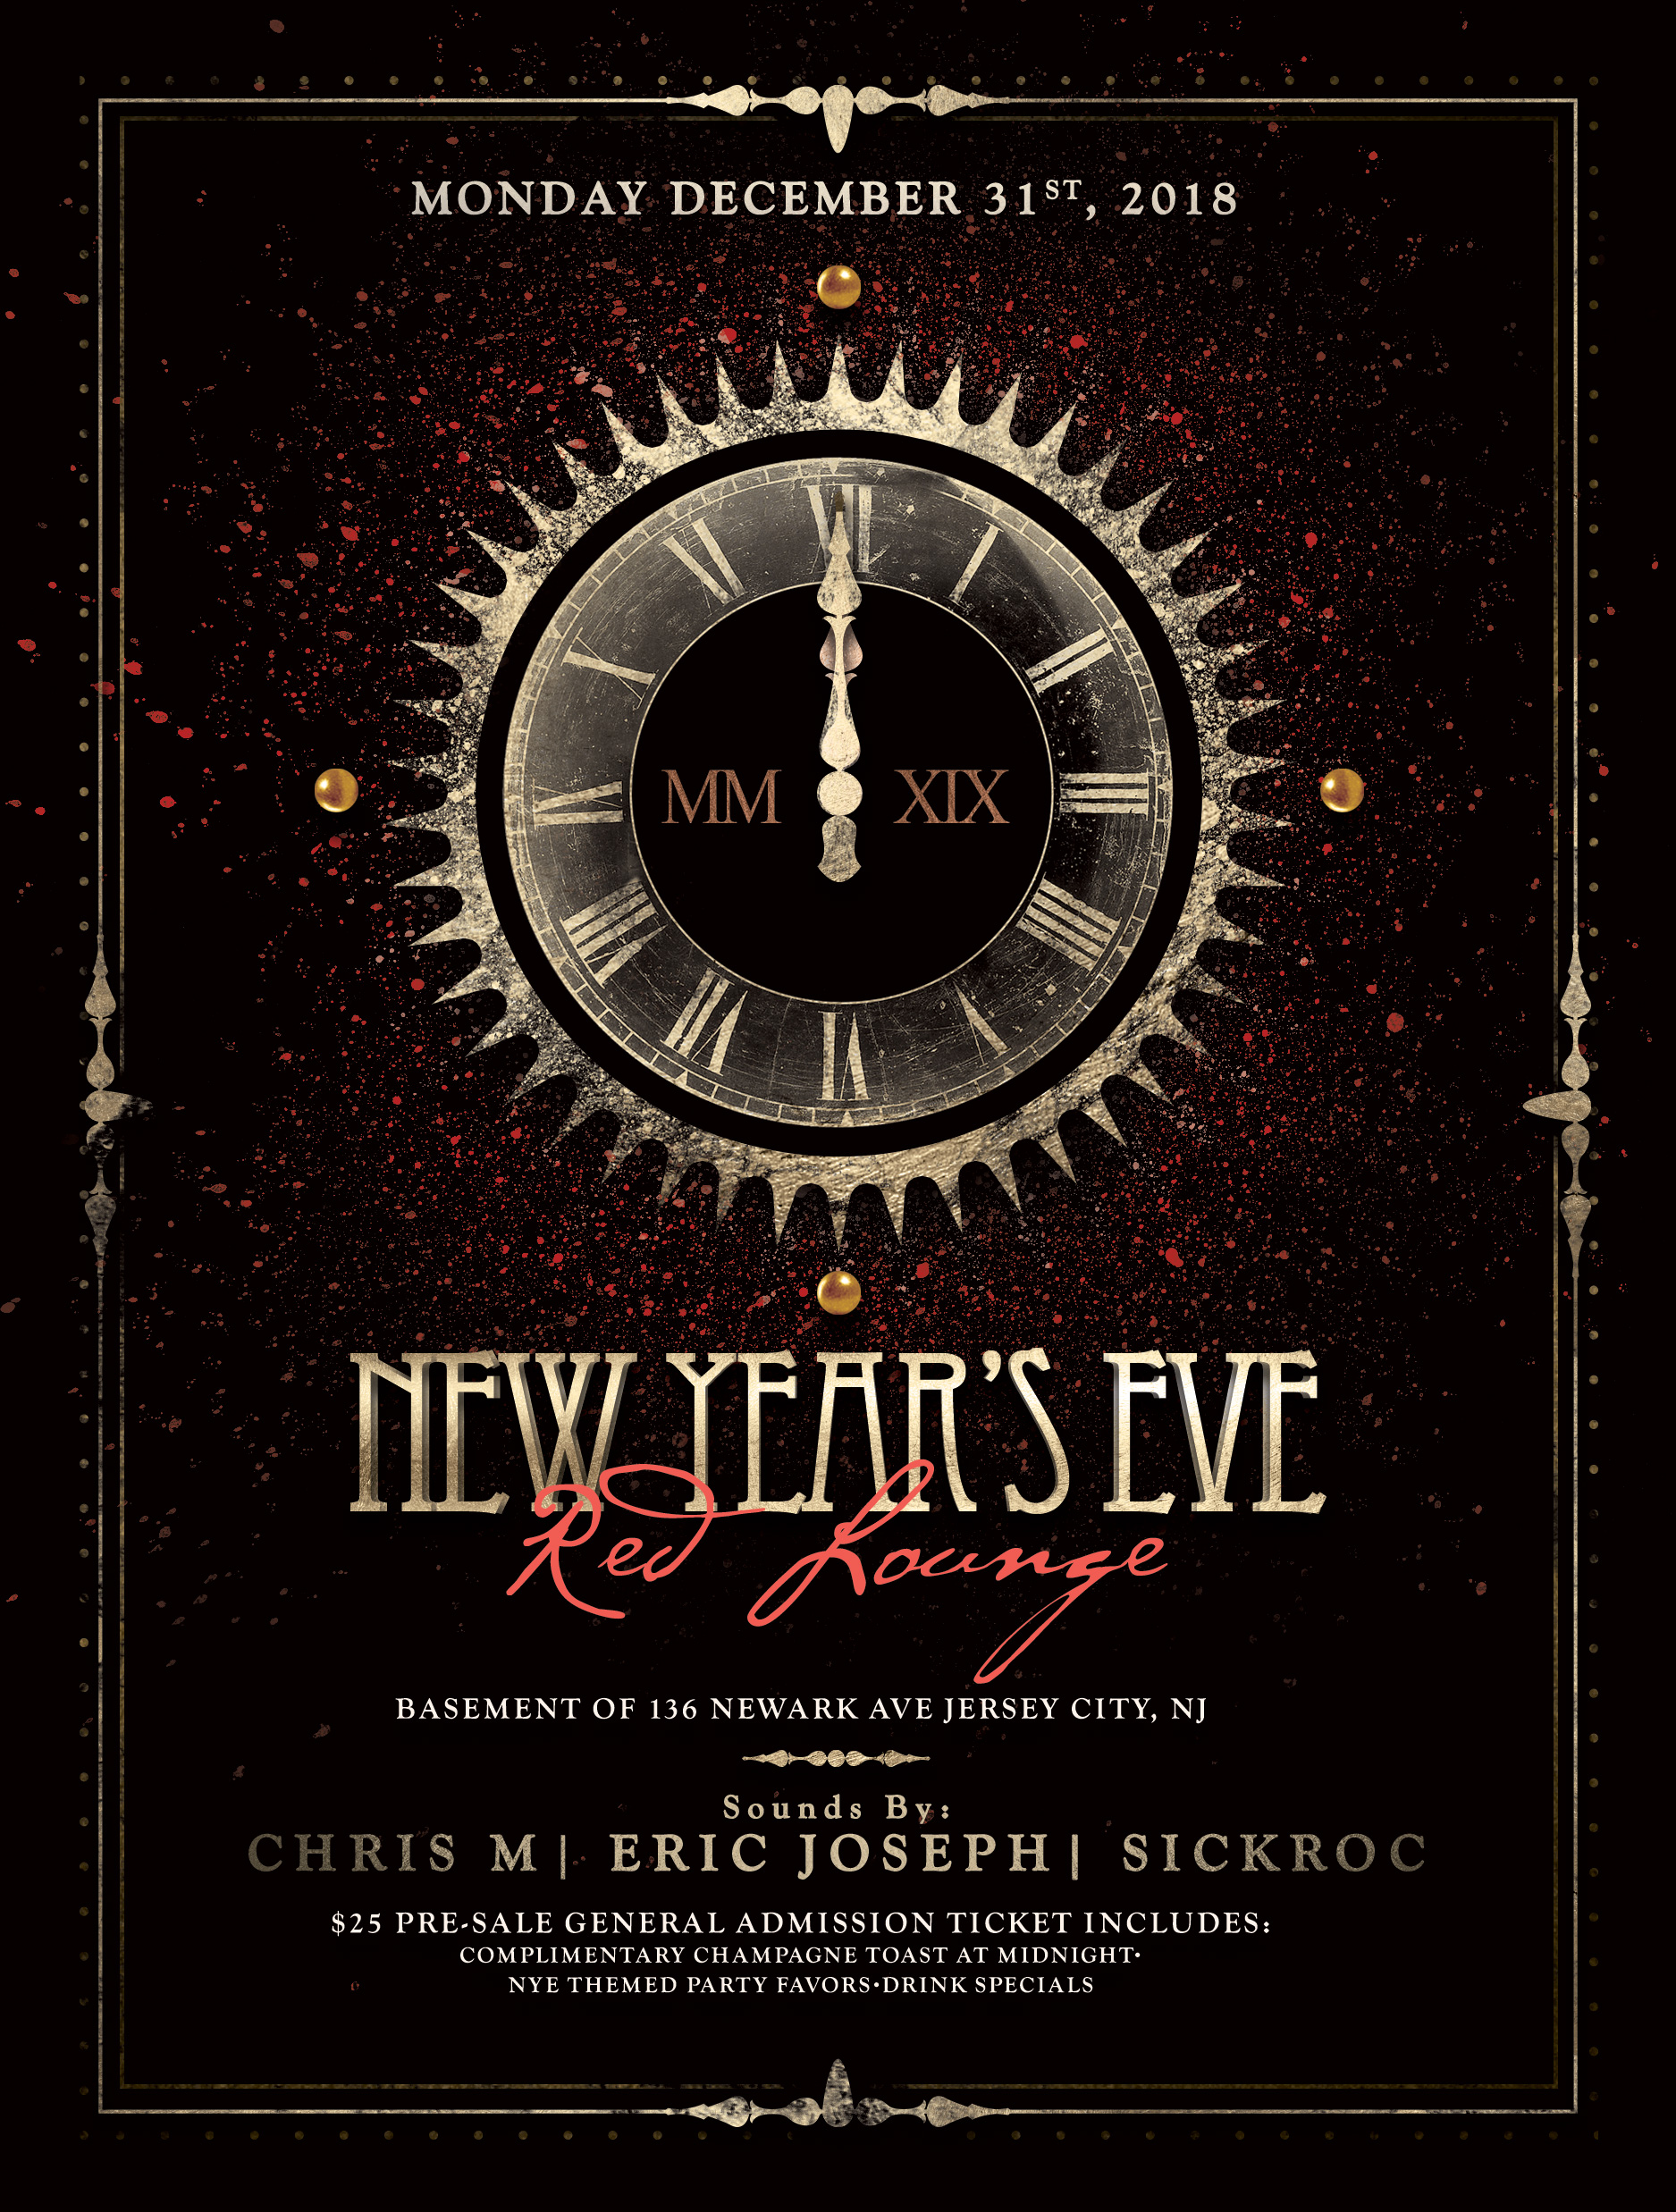 Red-Lounge-New-Year-Eve-2018-edit.jpg